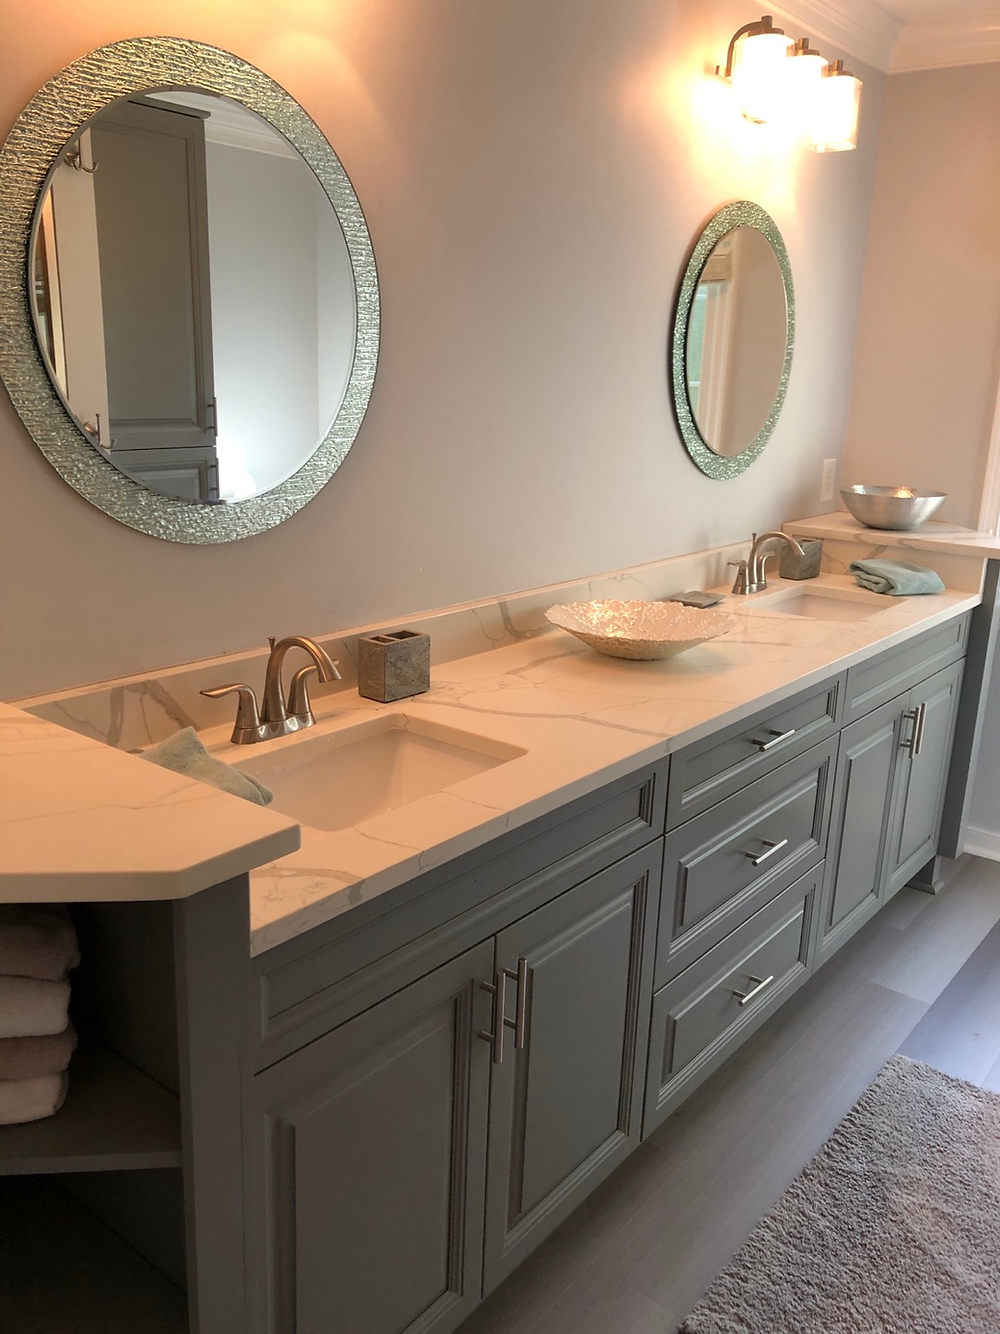 Home Remodeling Professionals Quality Construction Works Richmond Va